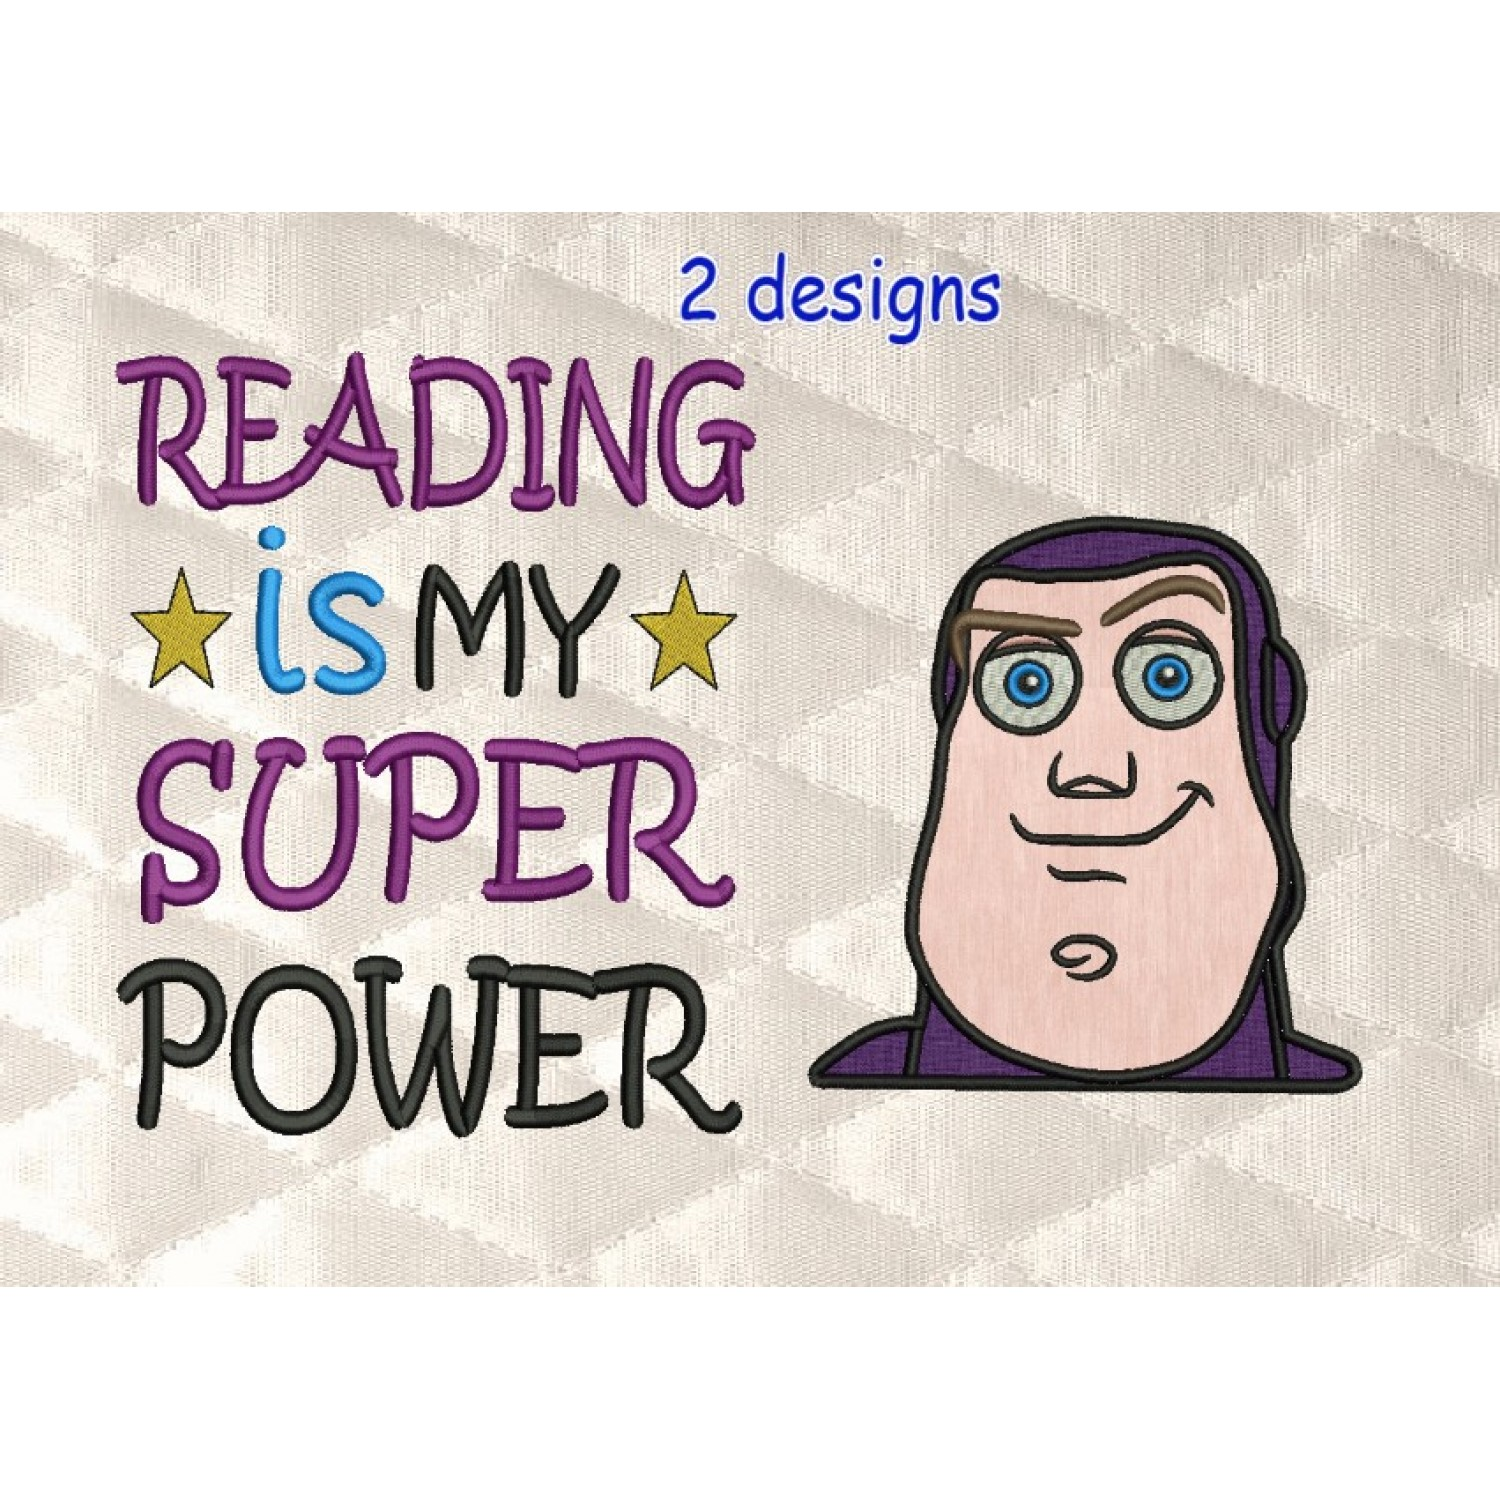 toy story buzz face with Reading is My Super power